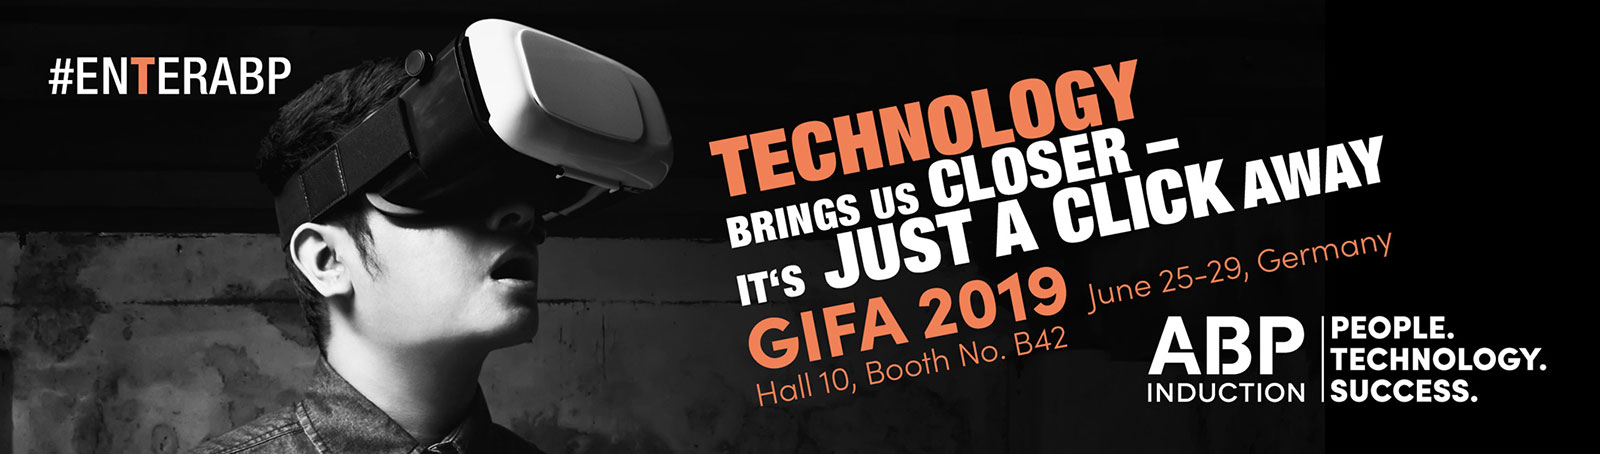 Technology brings us closer - ABP at the GIFA 2019